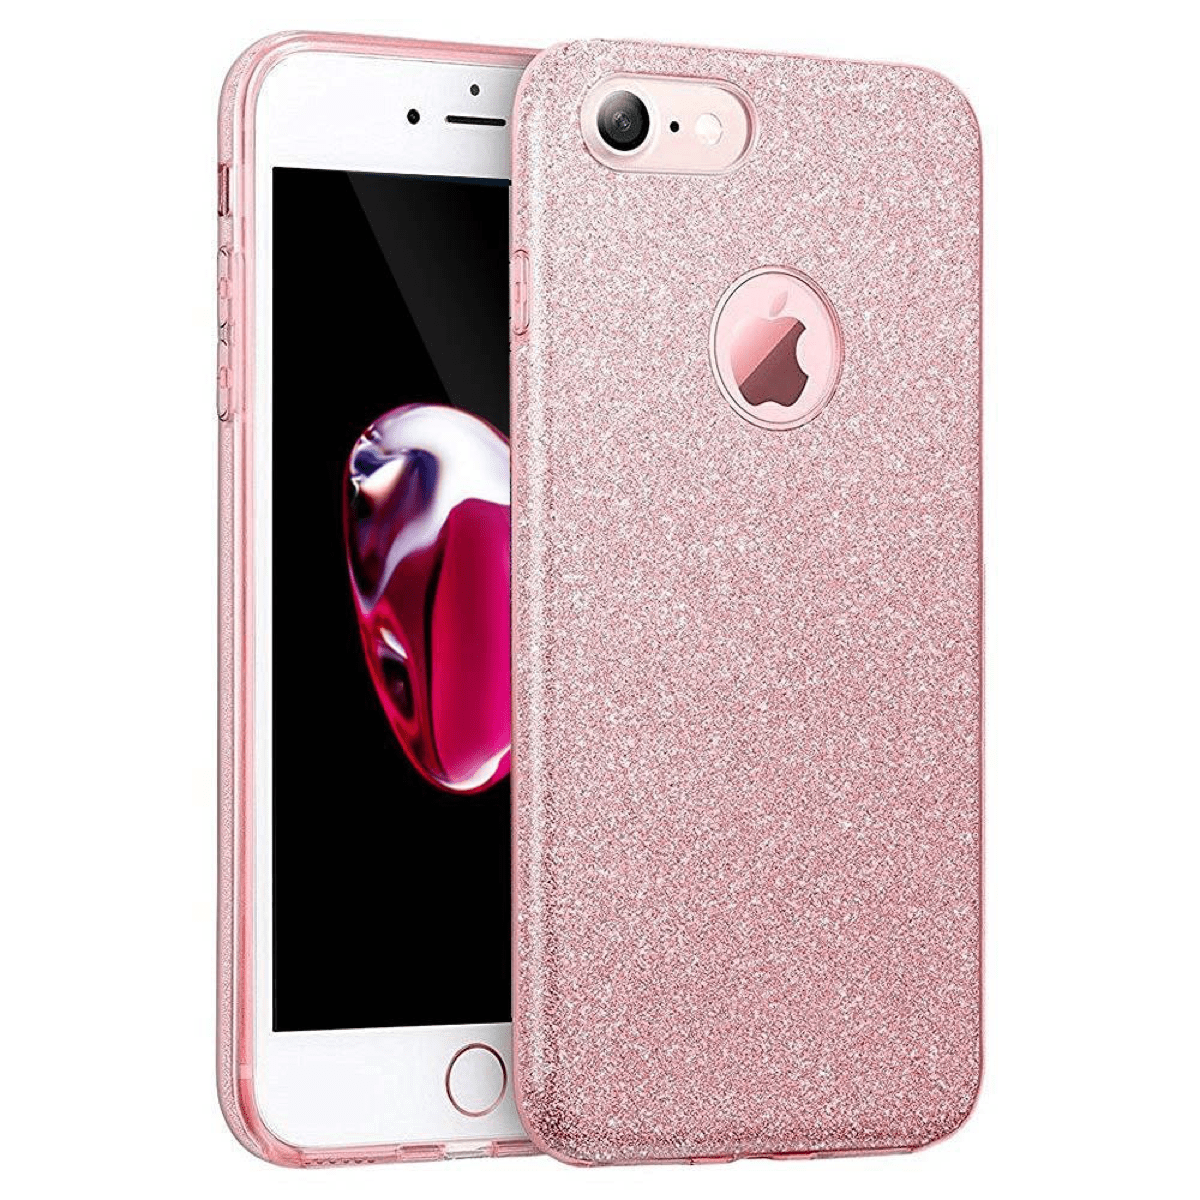 Eraglow glitter case in our list of Mother's Day iPhone cases.